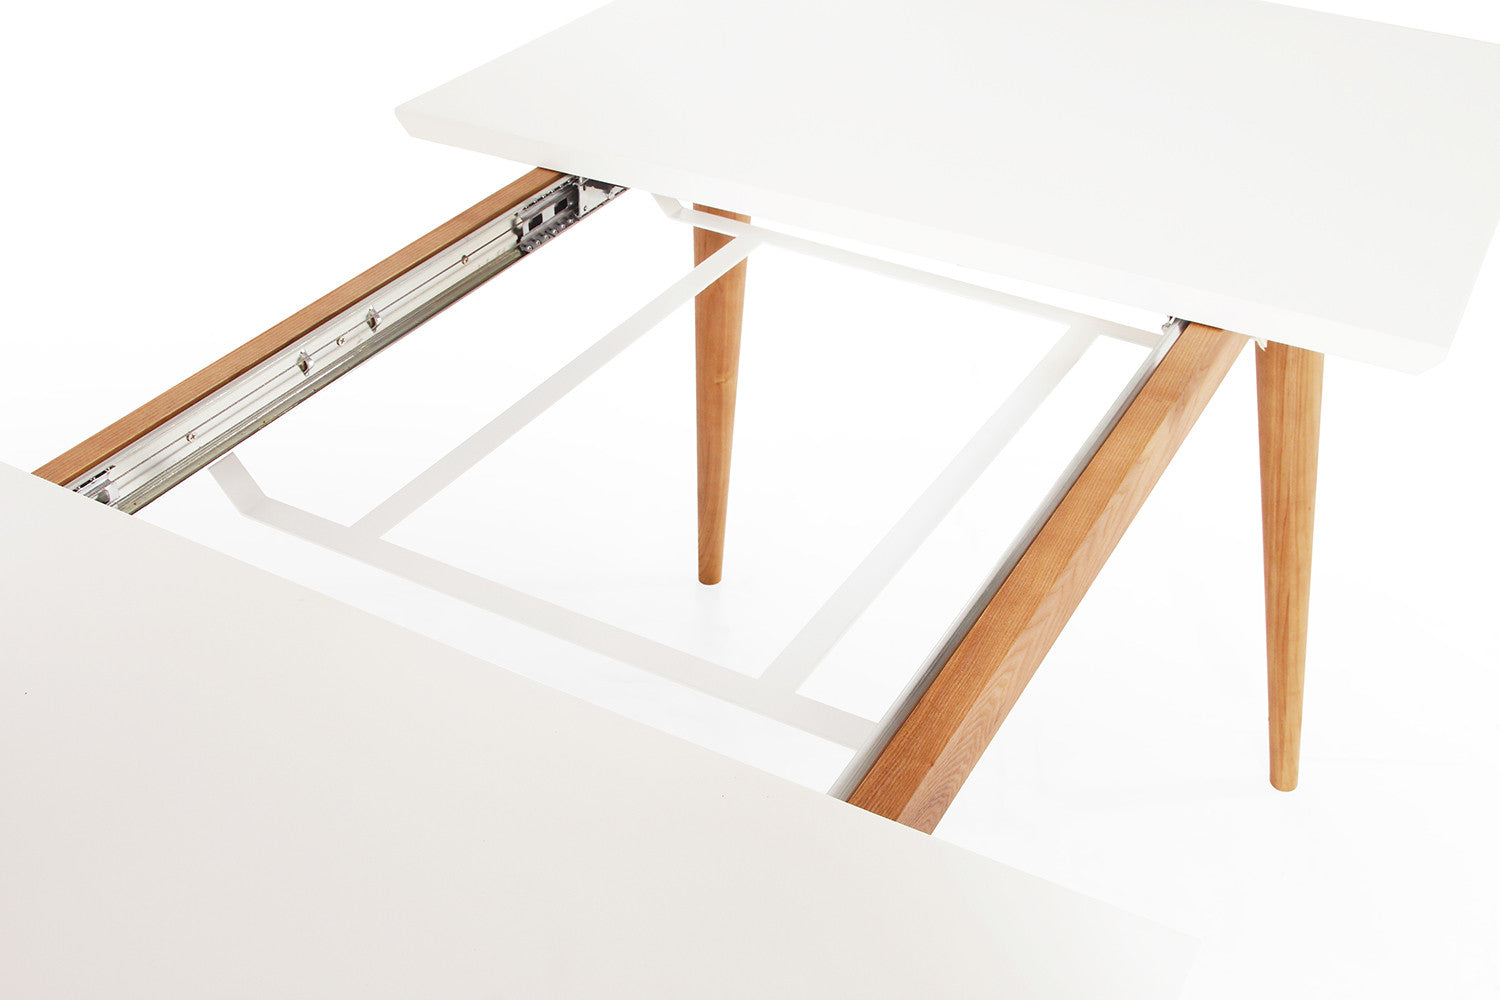 Table de salle manger extensible scandinave wyna dewarens - Dimensions table a manger ...